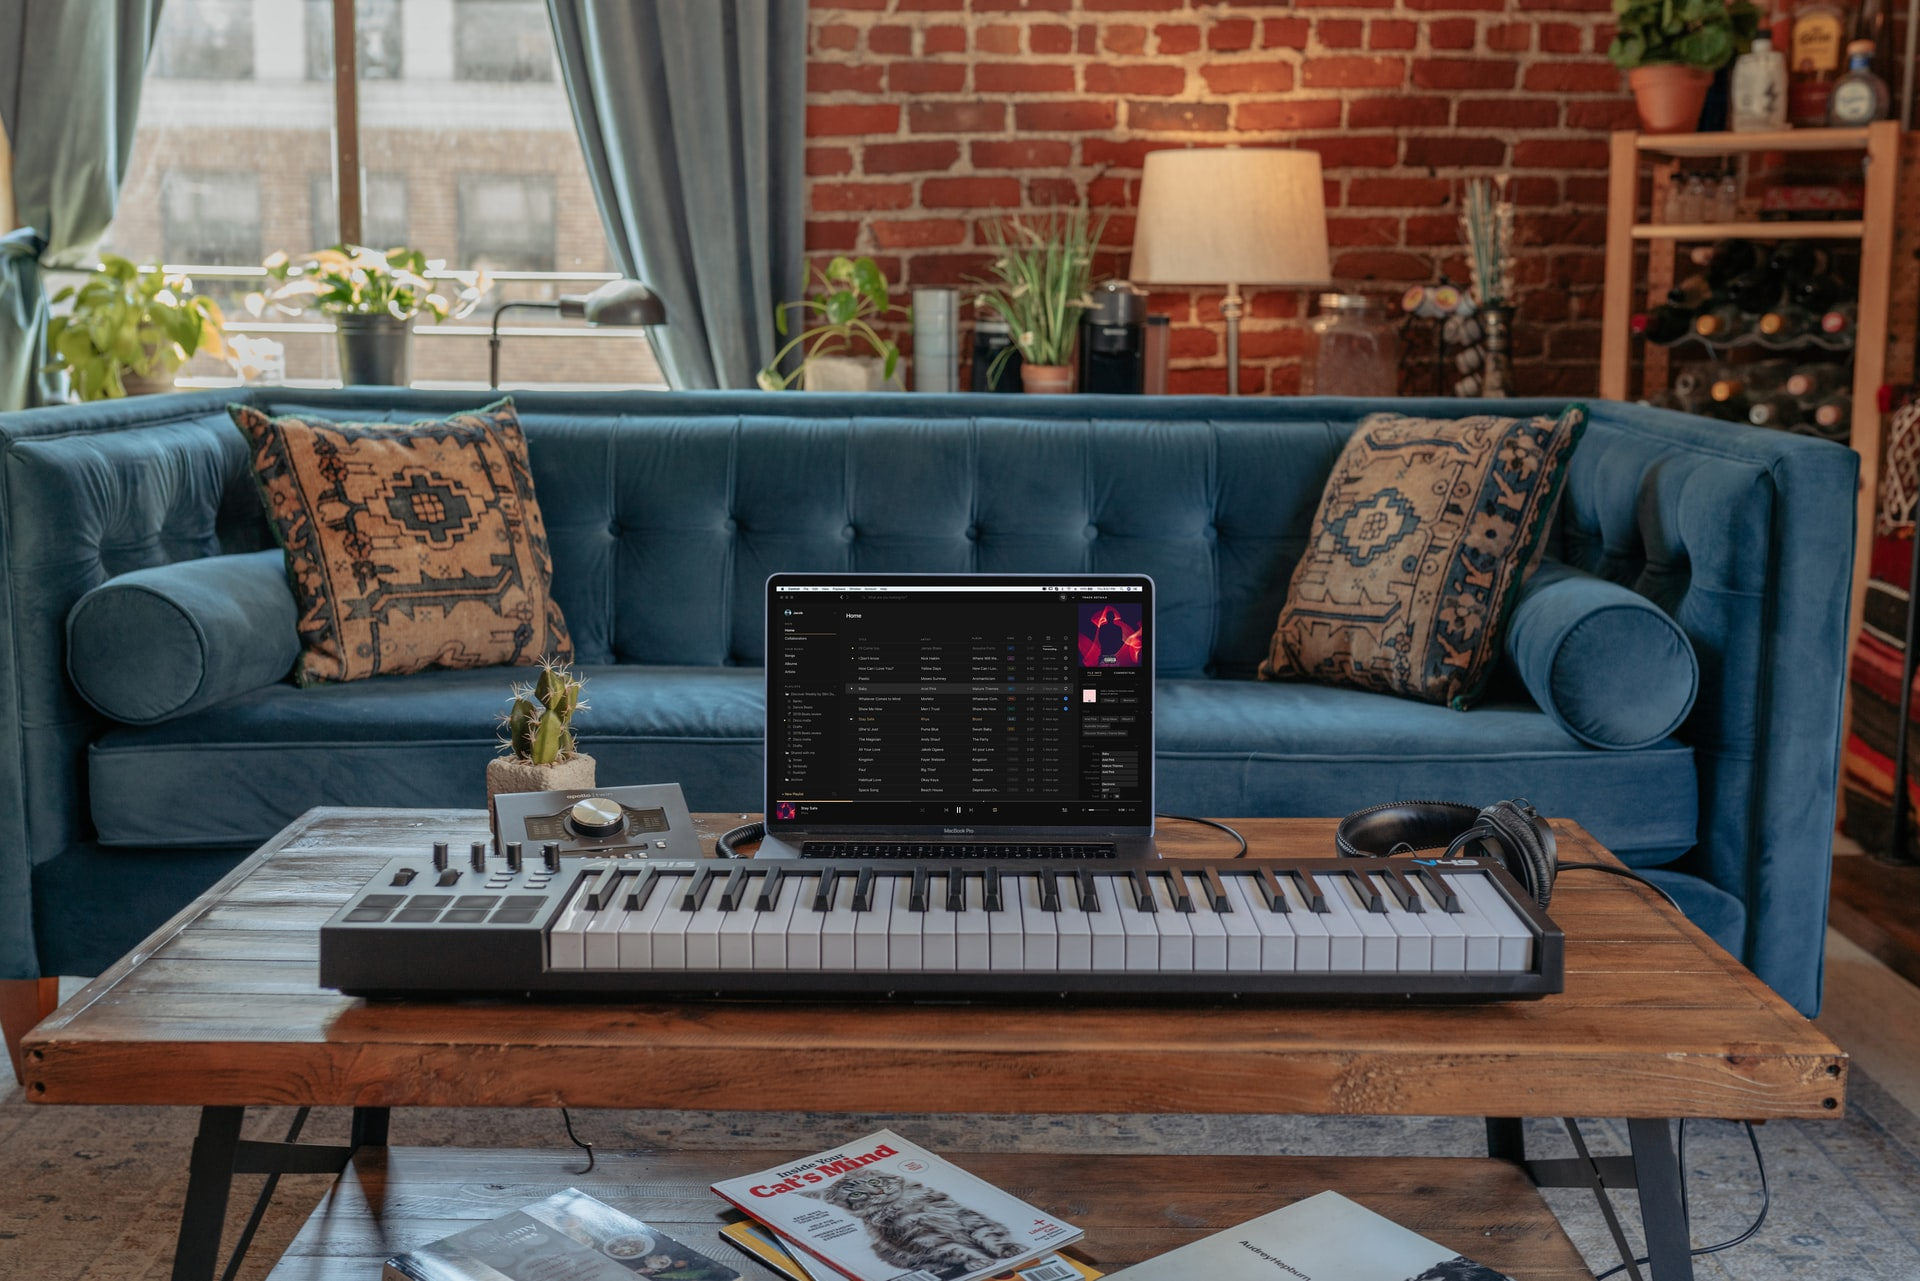 Synthesizer keyboard and laptop on a coffee table in front of a couch in a cozy, wood and exposed brick home.